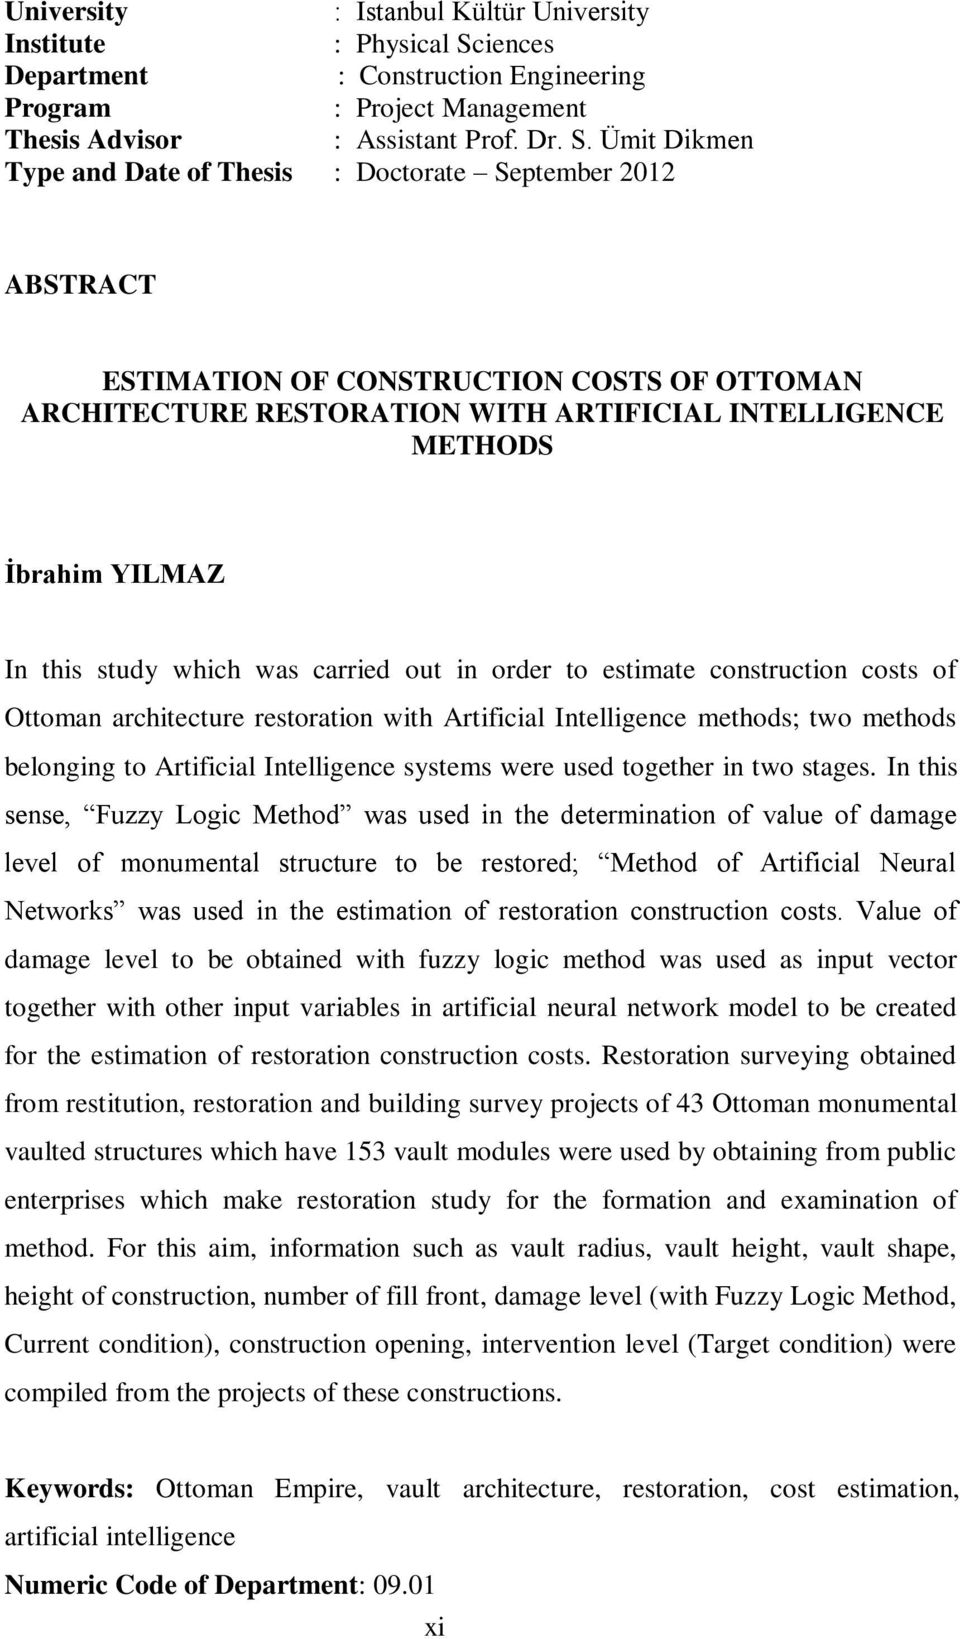 Ümit Dikmen Type and Date of Thesis : Doctorate September 2012 ABSTRACT ESTIMATION OF CONSTRUCTION COSTS OF OTTOMAN ARCHITECTURE RESTORATION WITH ARTIFICIAL INTELLIGENCE METHODS İbrahim YILMAZ In